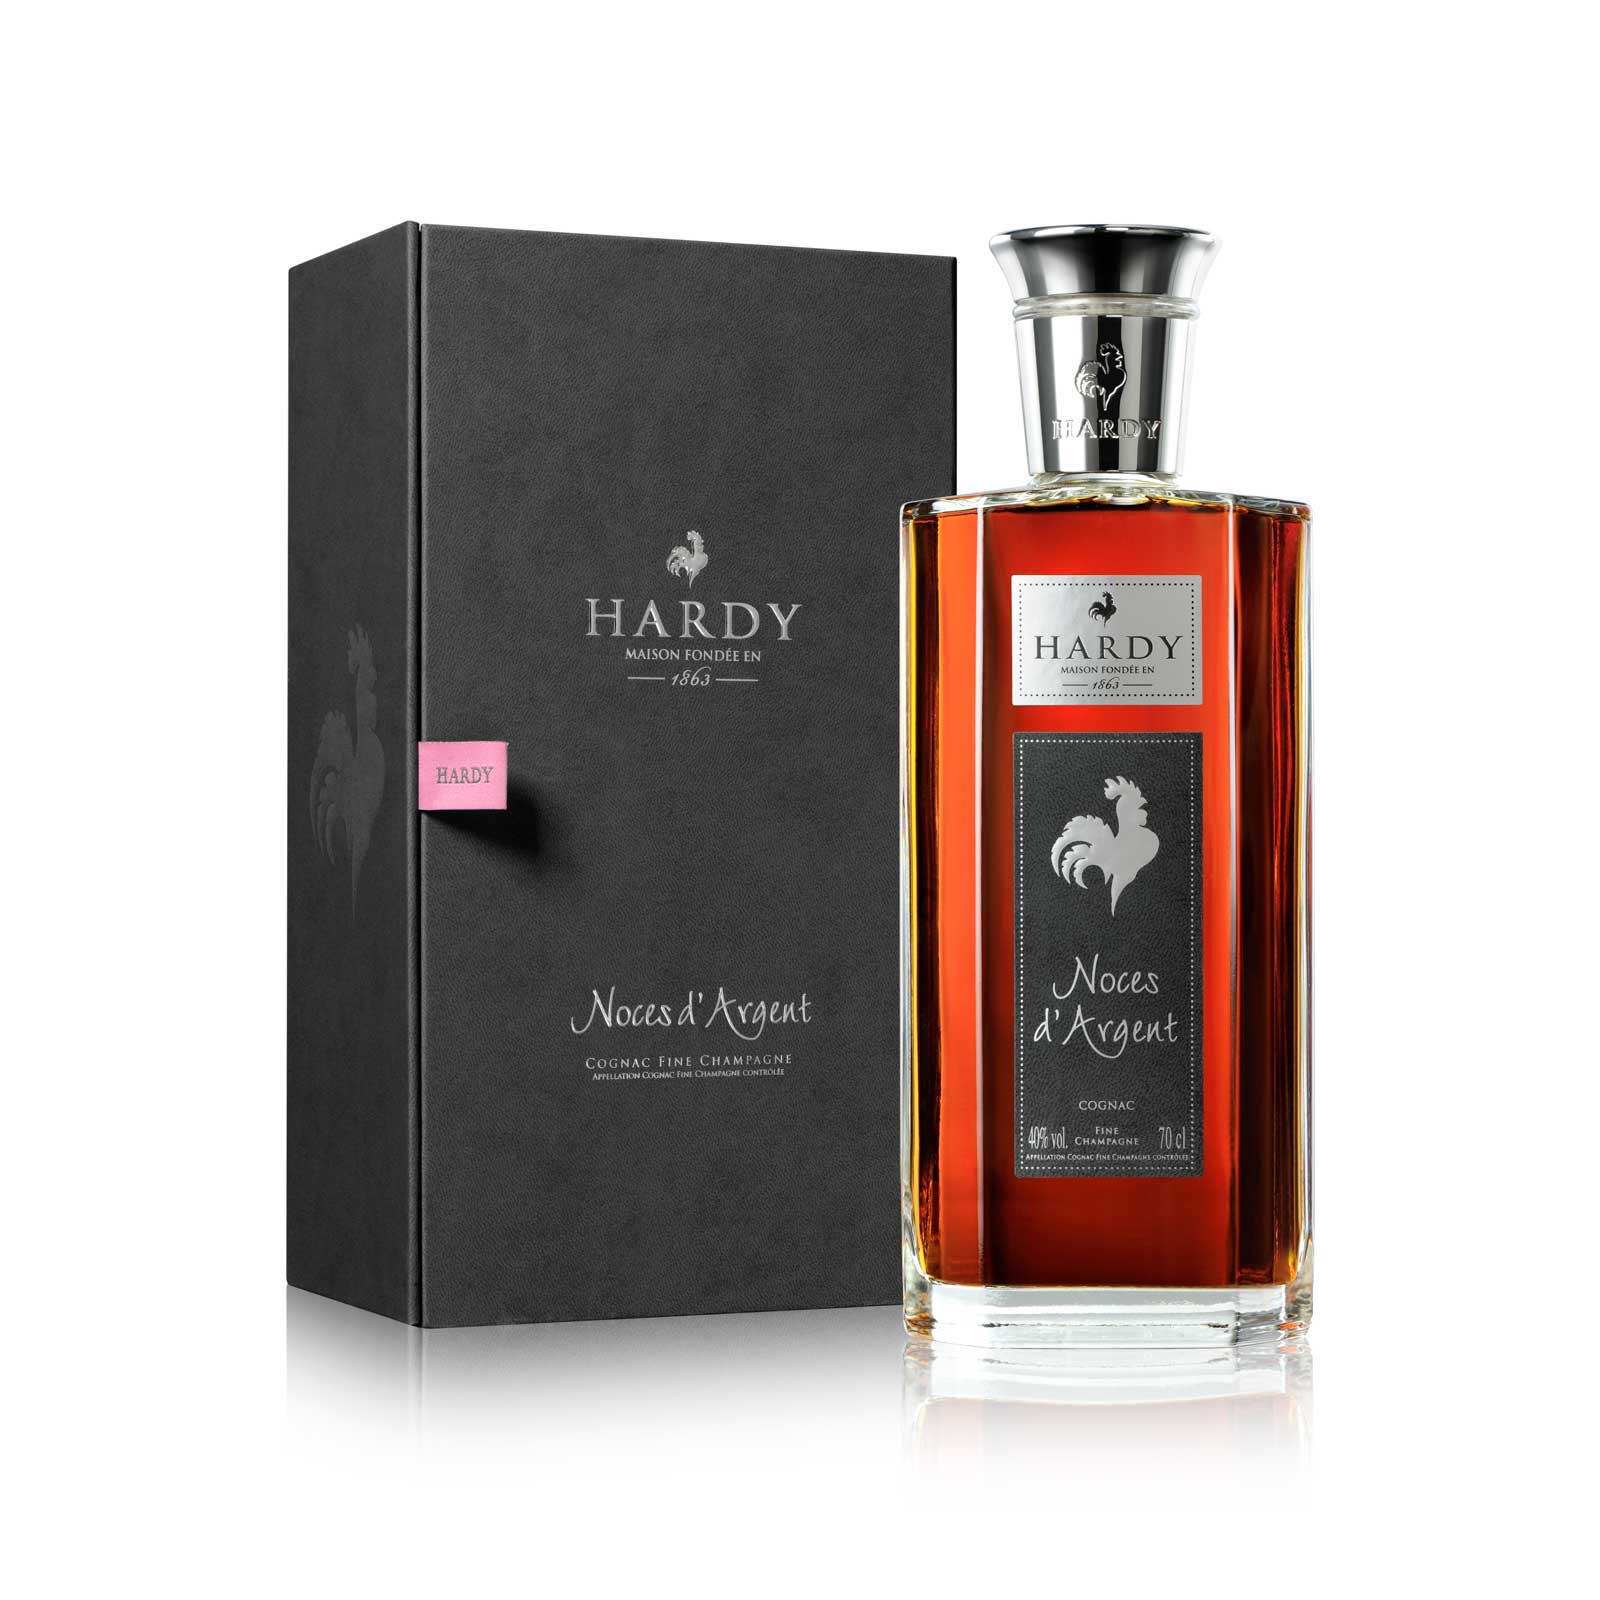 Hardy: The Haute Couture of Cognac